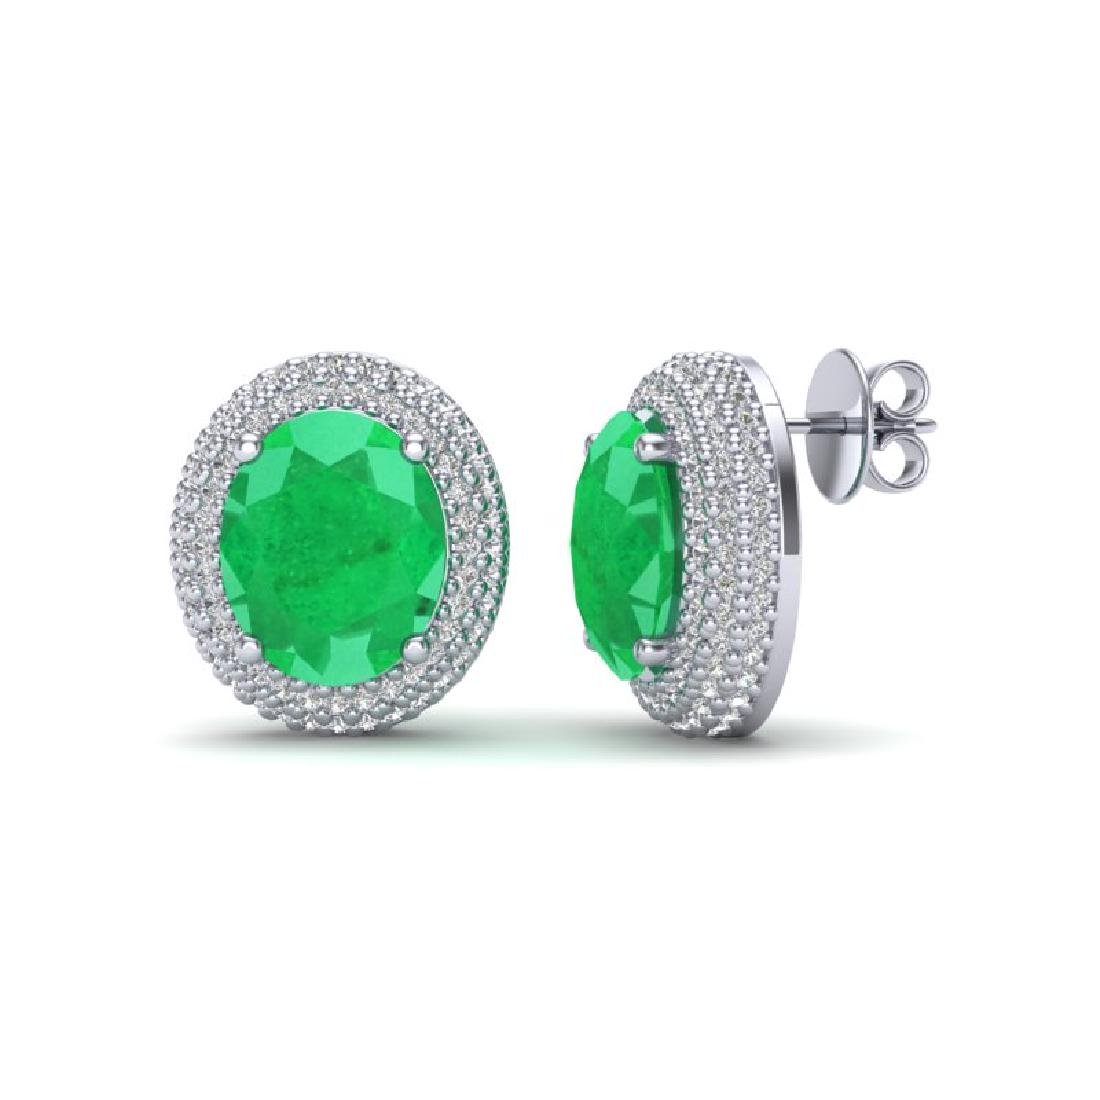 9.20 CTW Emerald & Micro Pave VS/SI Diamond Earrings - 2